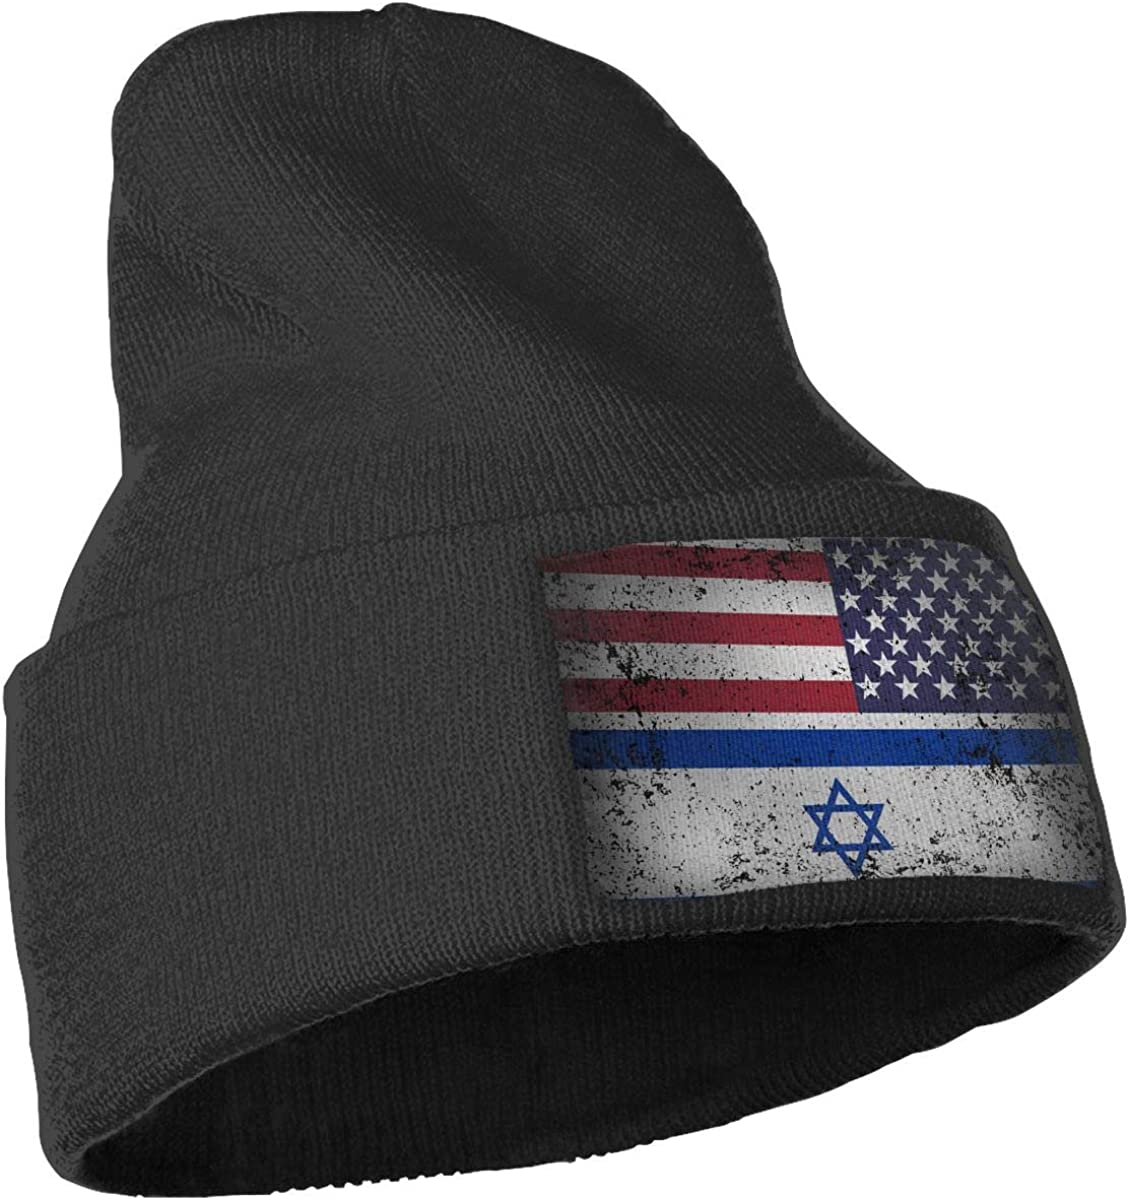 American Grown with Israeli Roots Beanie Cap Hat Men Women Knit Hats Stretchy /& Soft Beanie